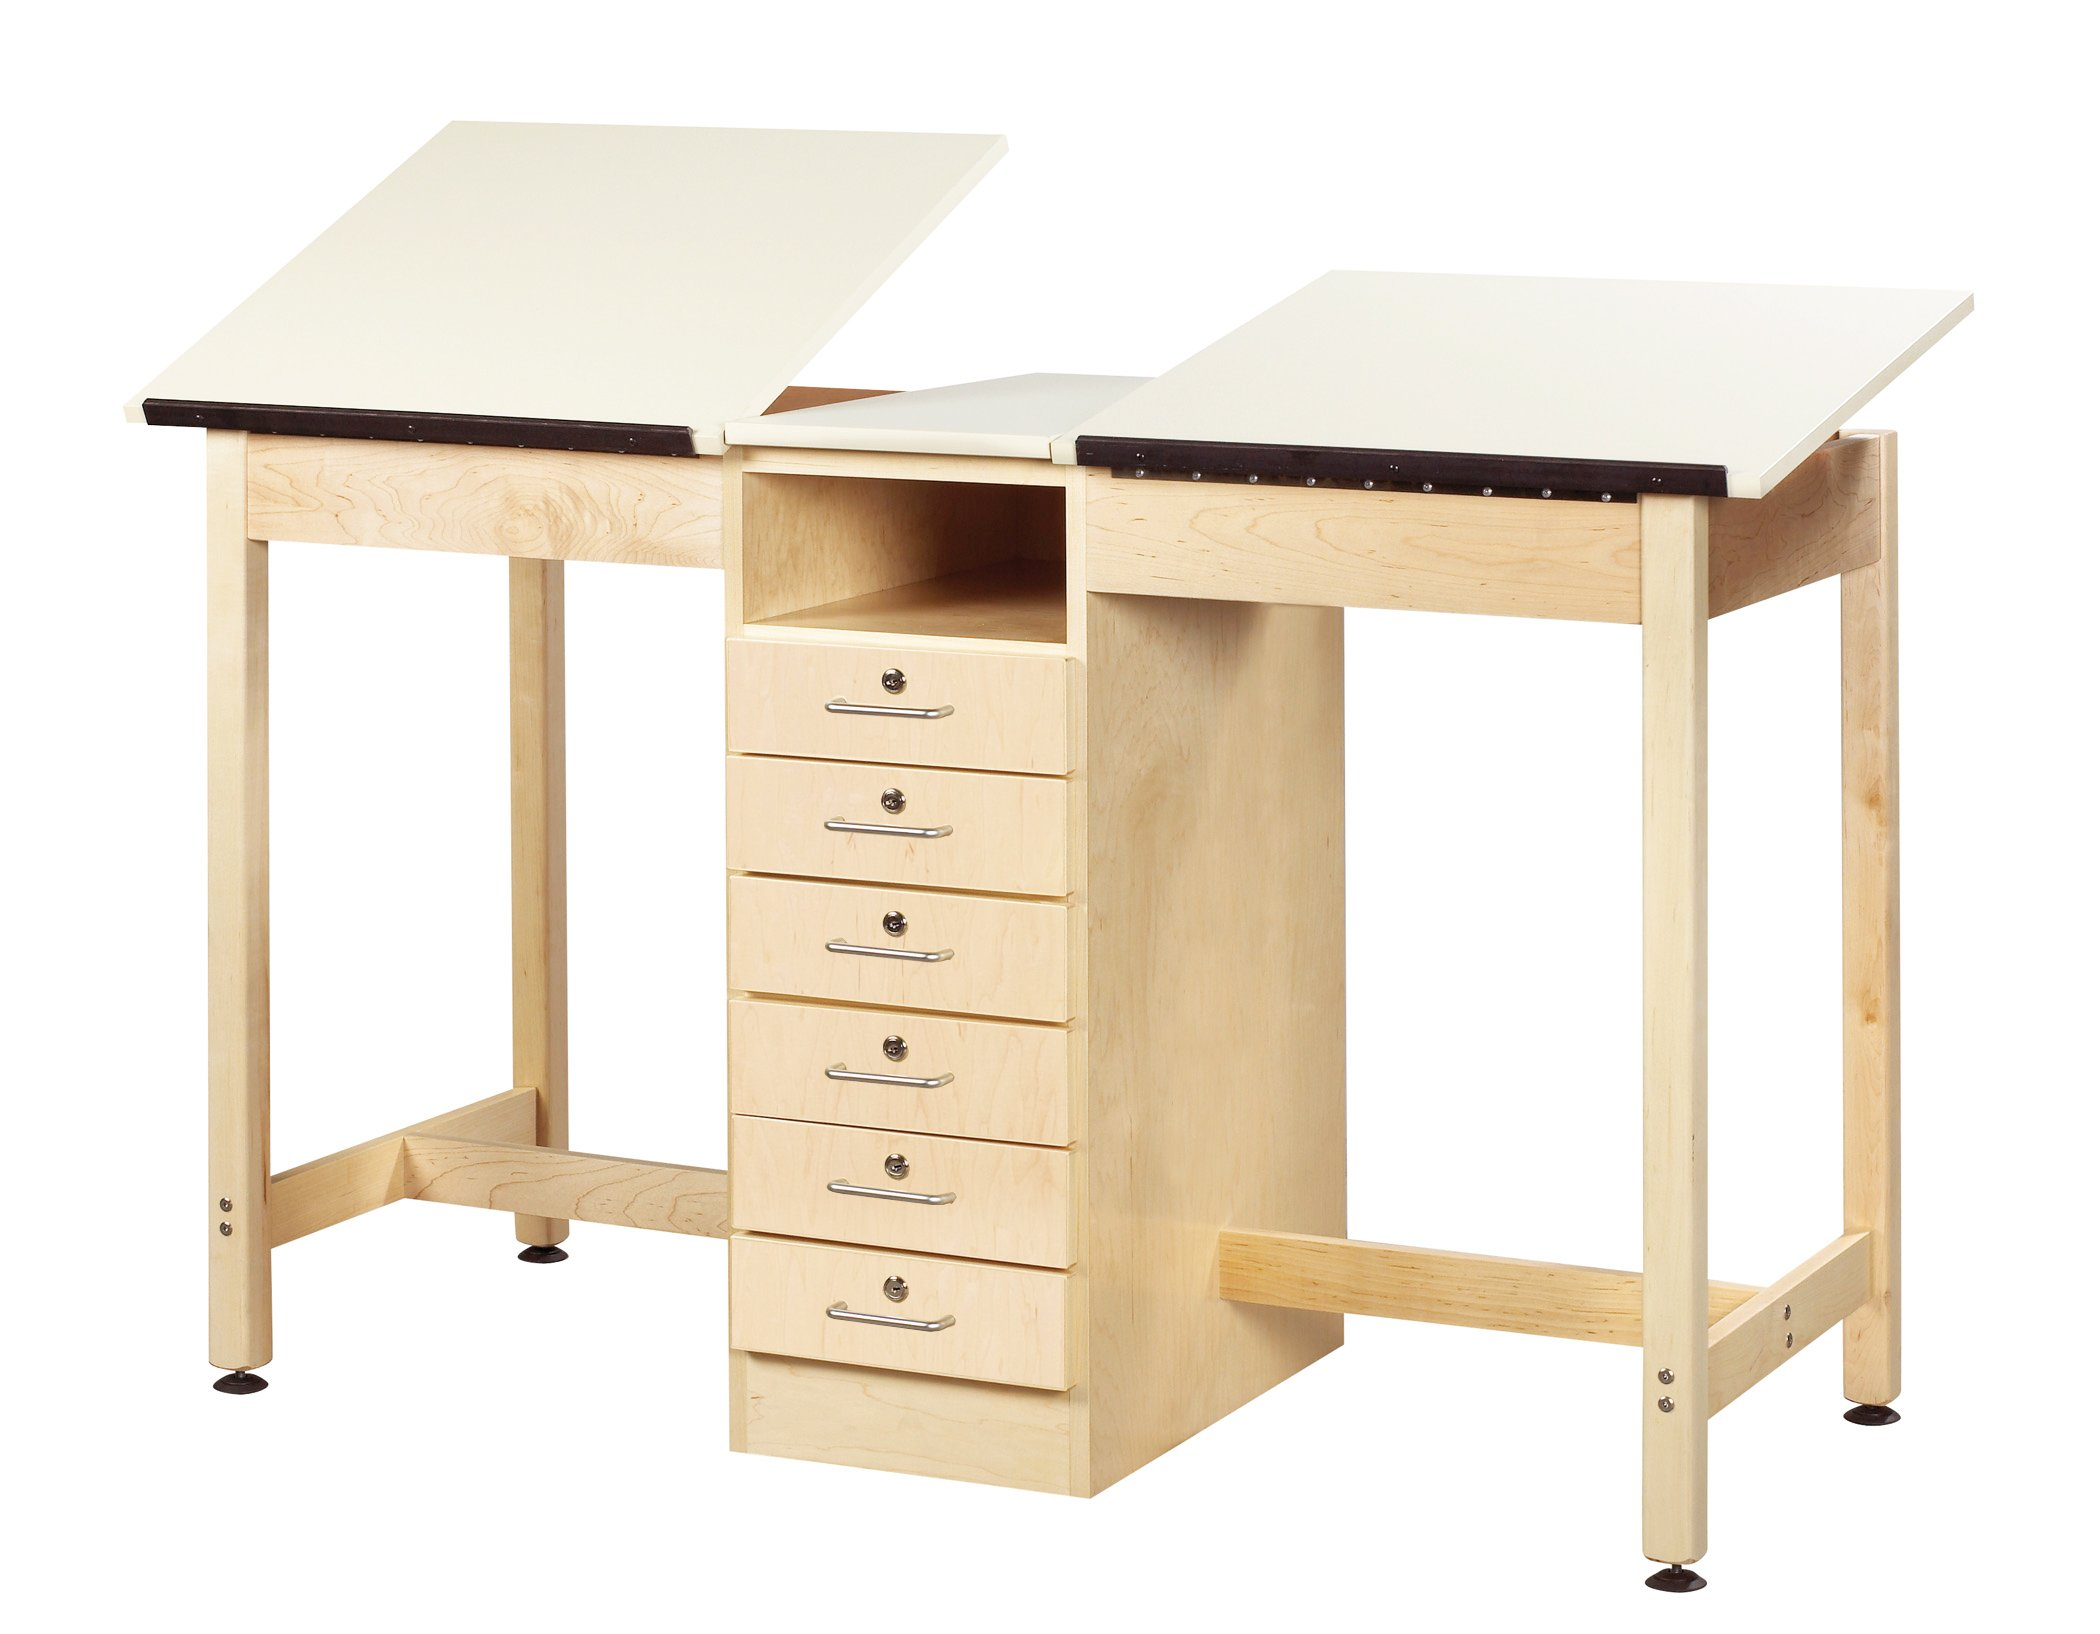 """Diversified Woodcrafts DTA-21A UV Finish Solid Maple Wood 2 Station Art/Drafting Table, 60"""" Width x 36"""" Height x 24"""" Depth"""